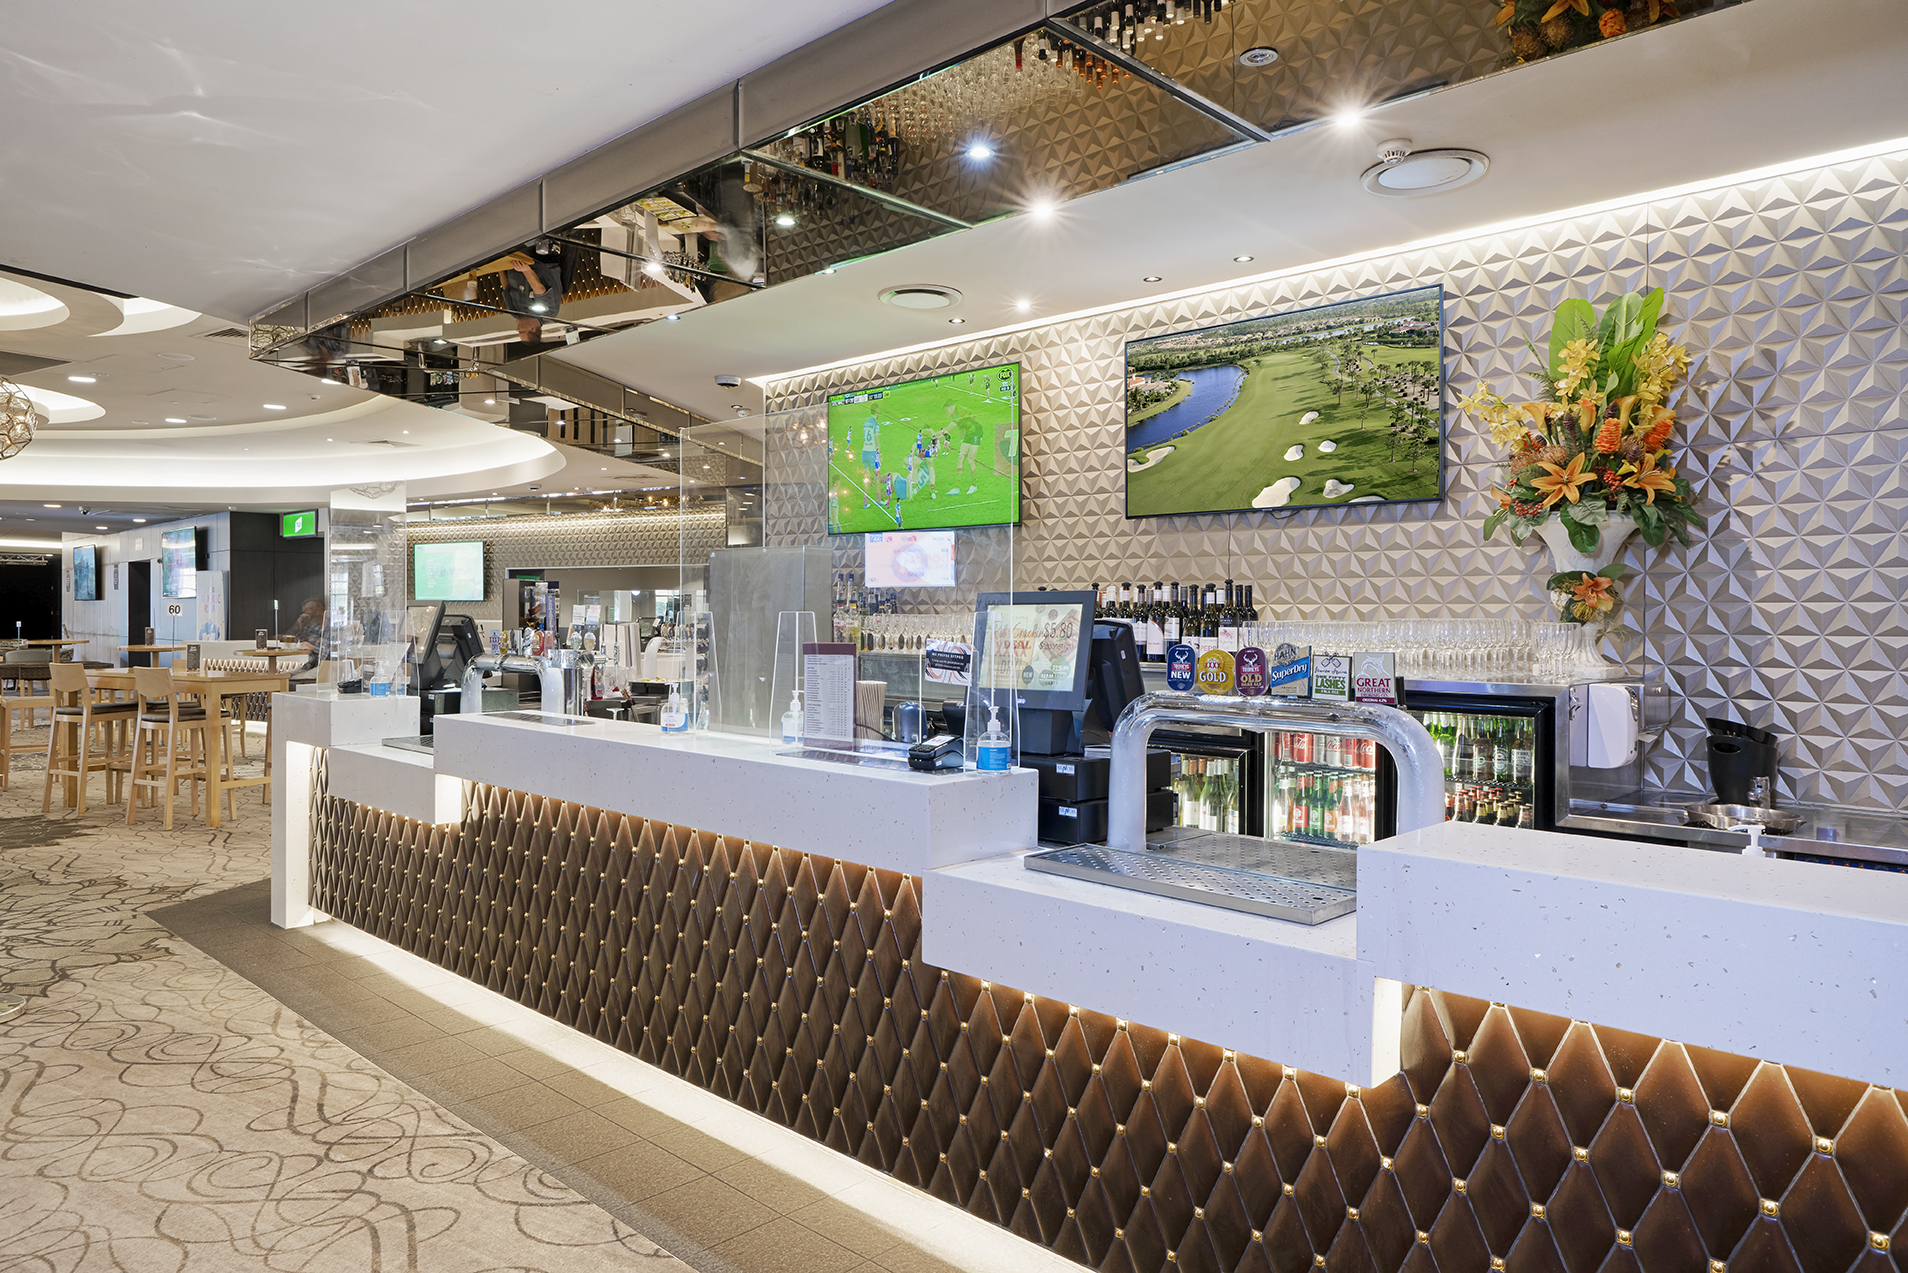 Easts Leagues Club Main Bar and Lounge